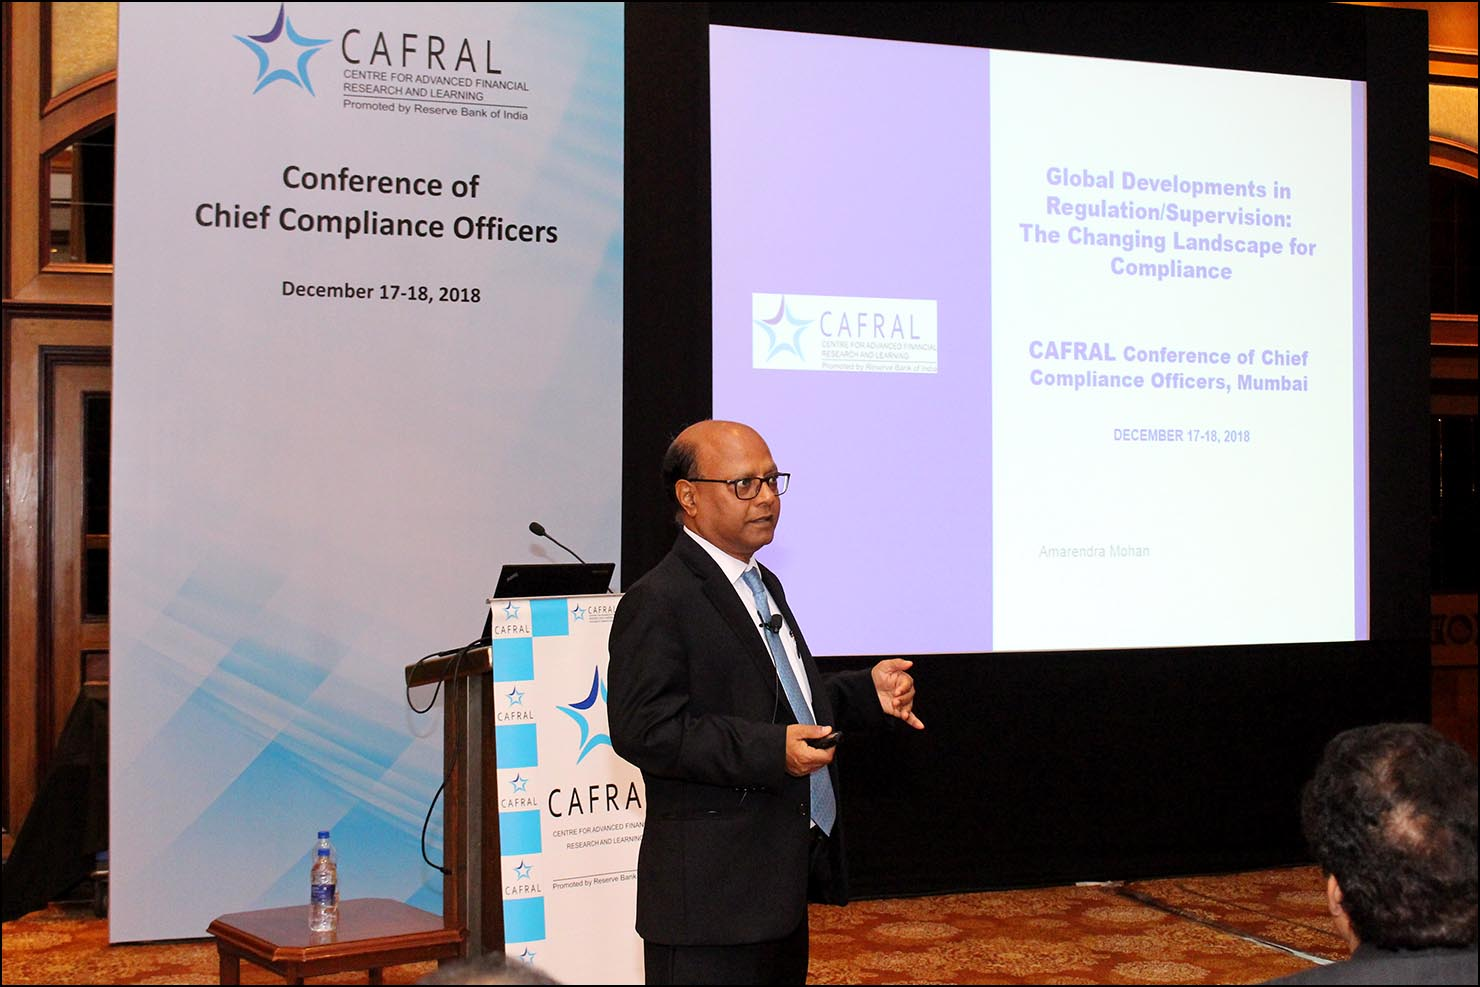 Amarendra Mohan, Sr. Program Director, CAFRAL